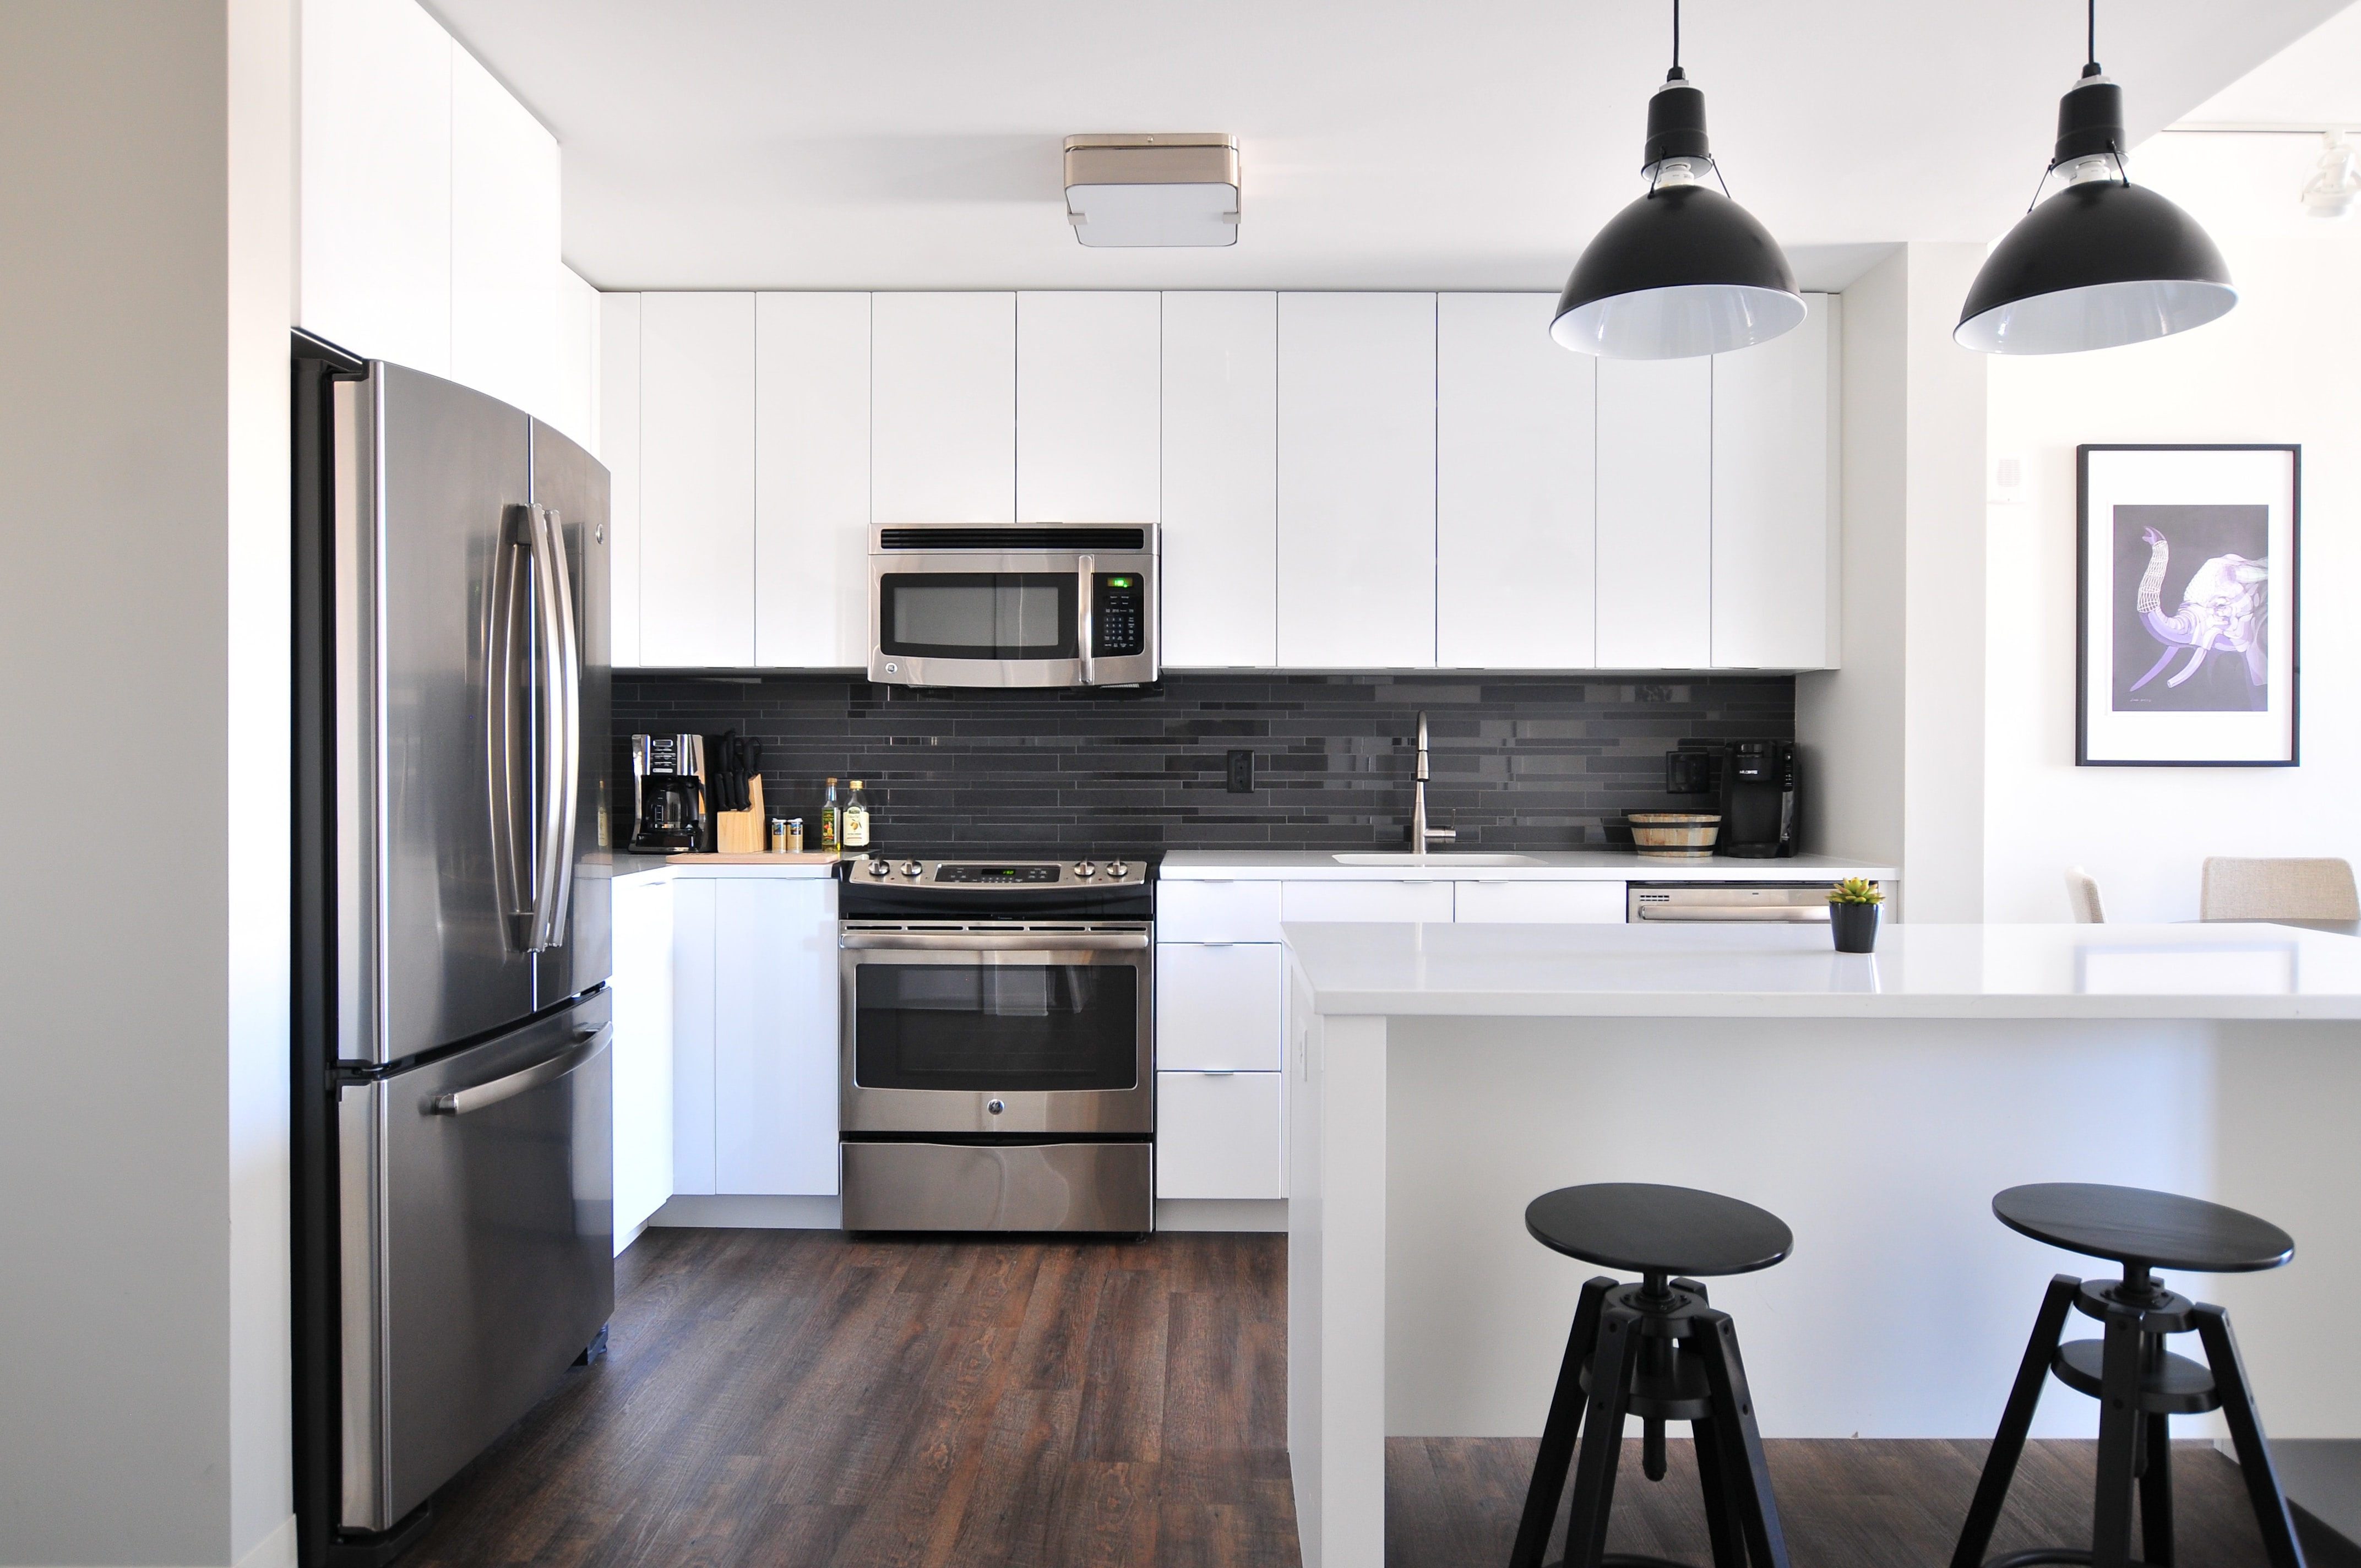 What Items to Move Into Your Condo